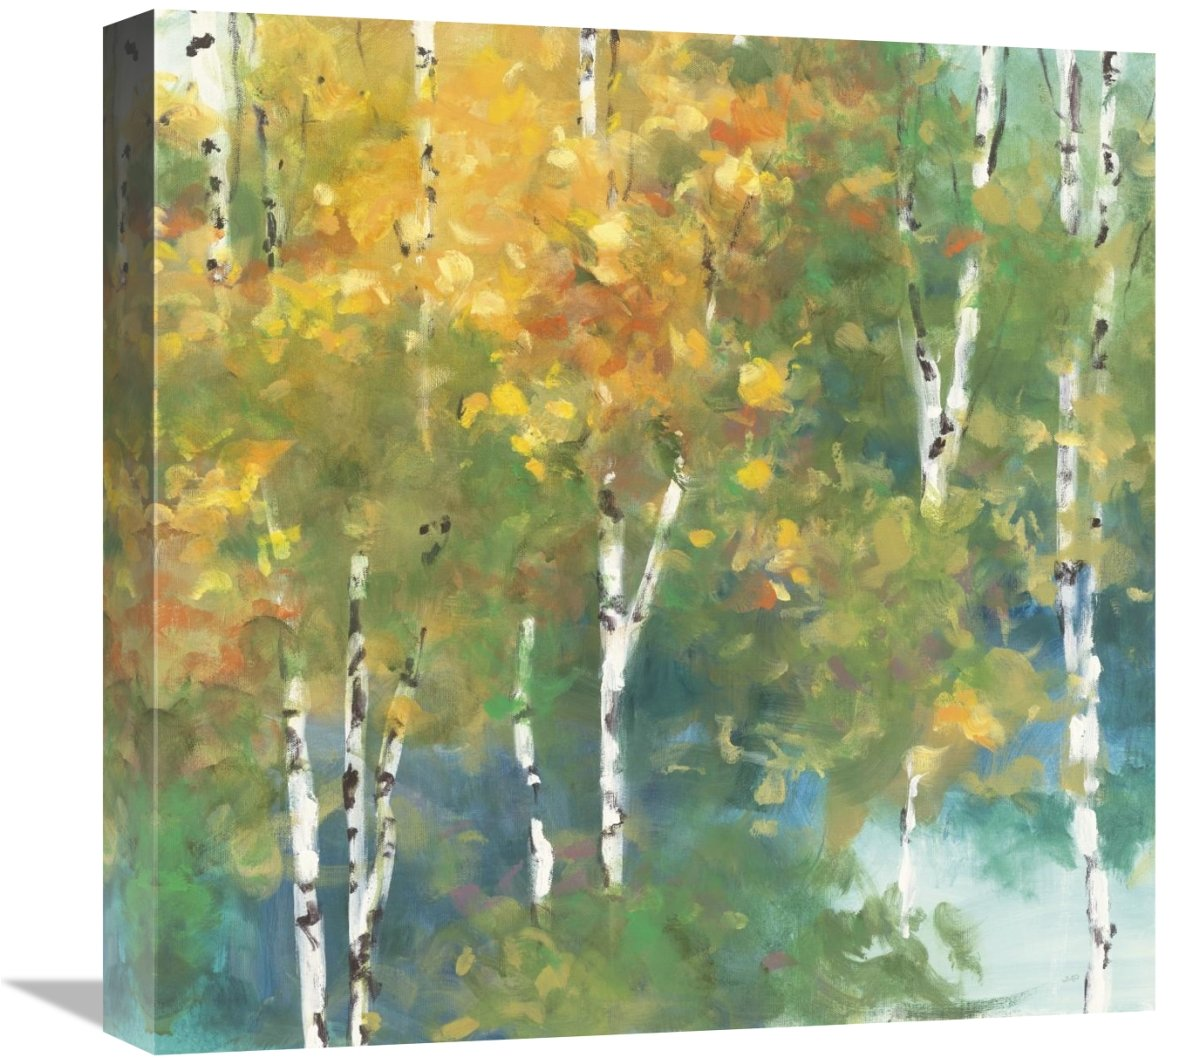 Confetti I Giclee Stretched Canvas Artwork 18 x 18 Global Gallery Julia Purinton